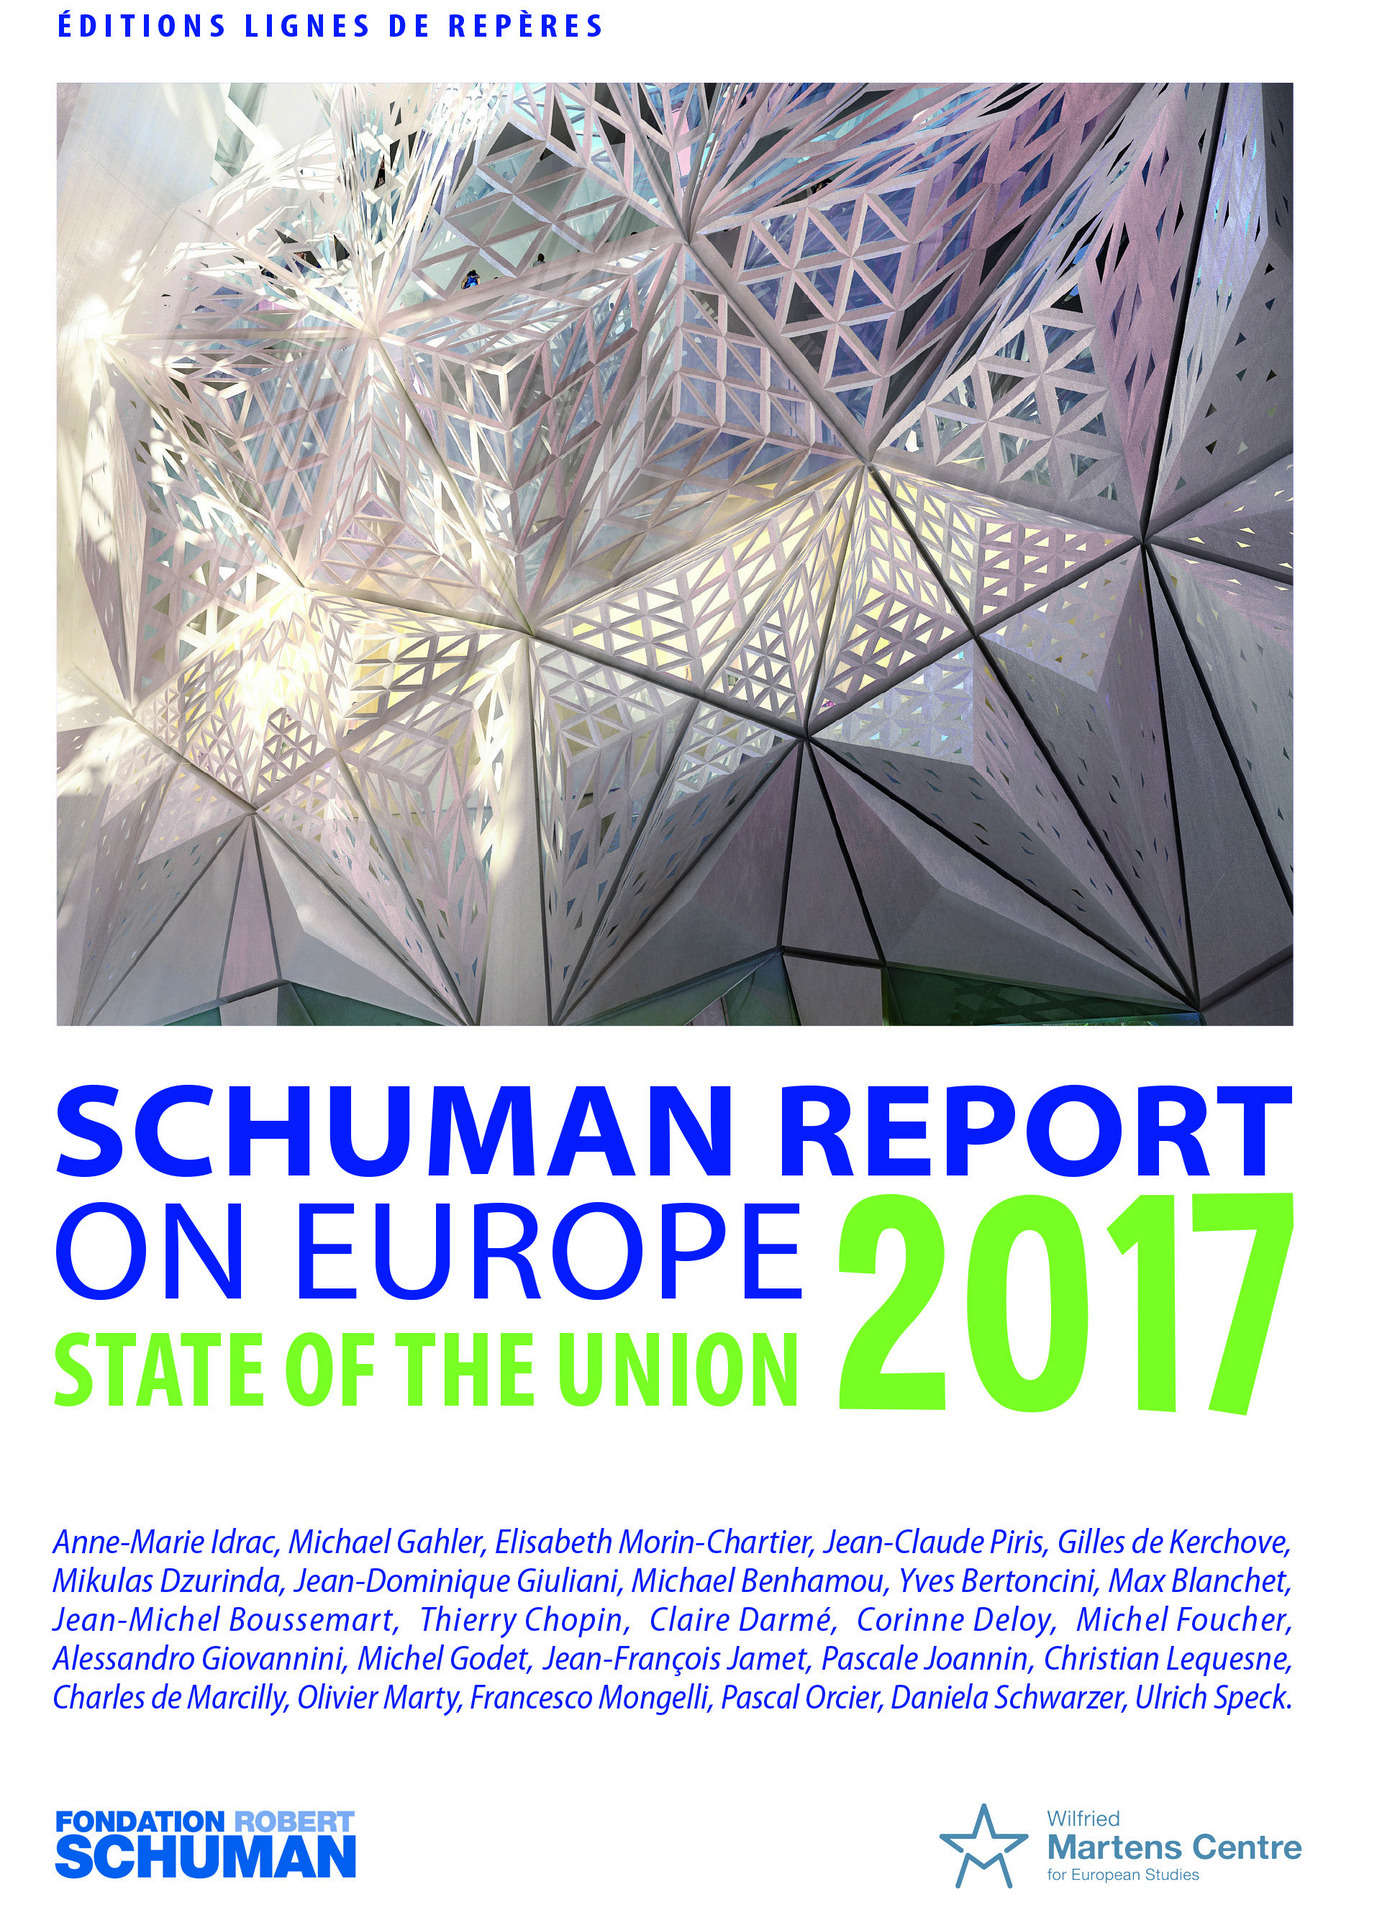 State of the Union, Schuman report 2017 on Europe